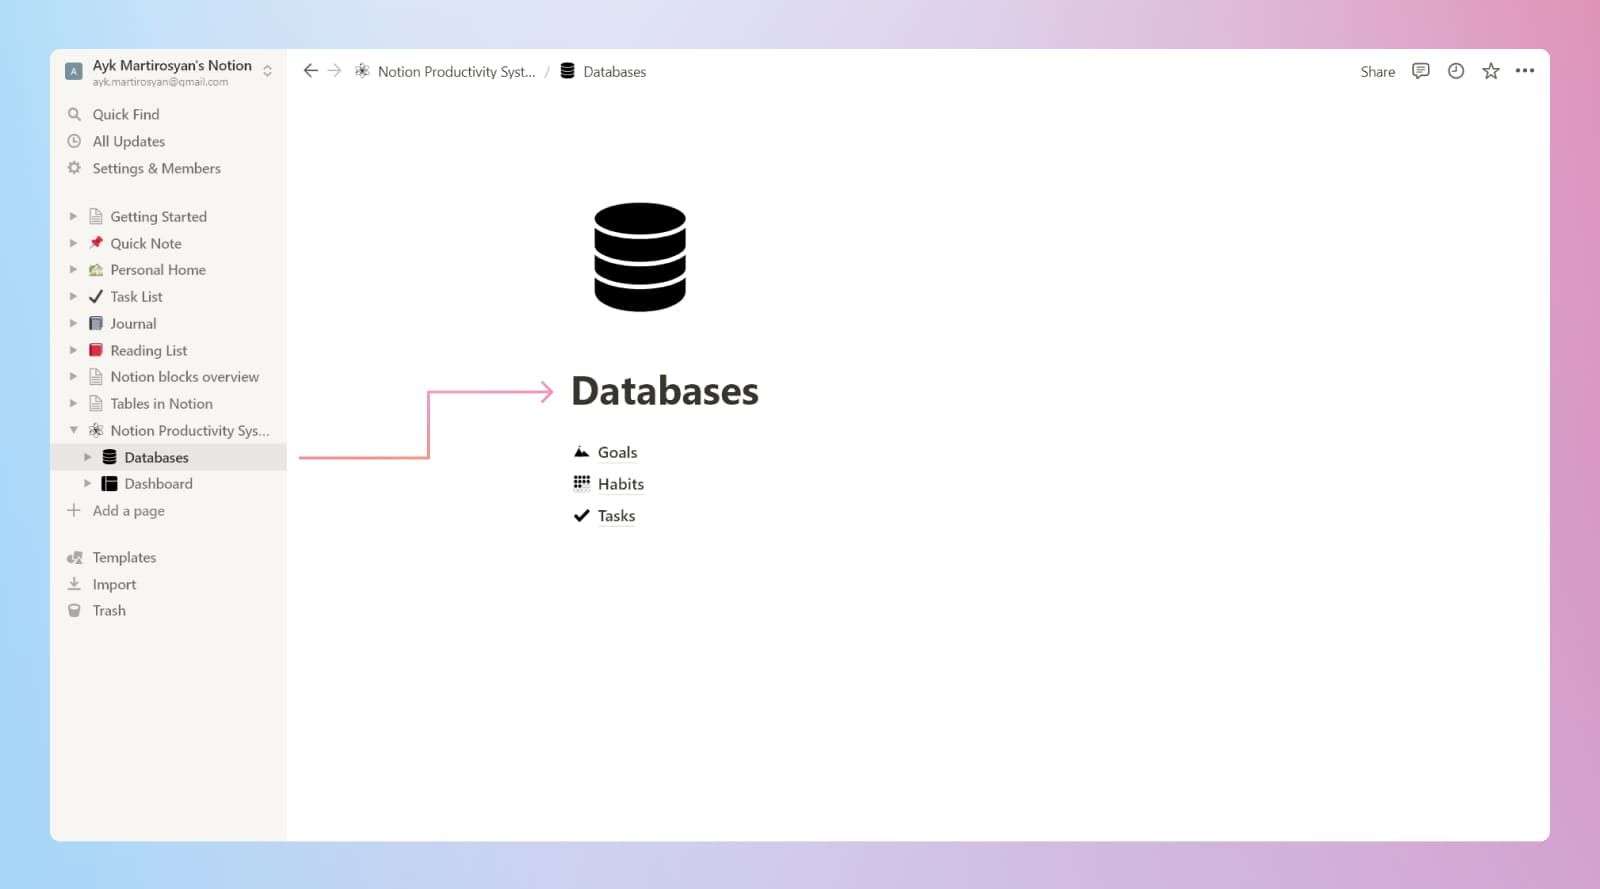 Notion beginner's productivity system databases page.